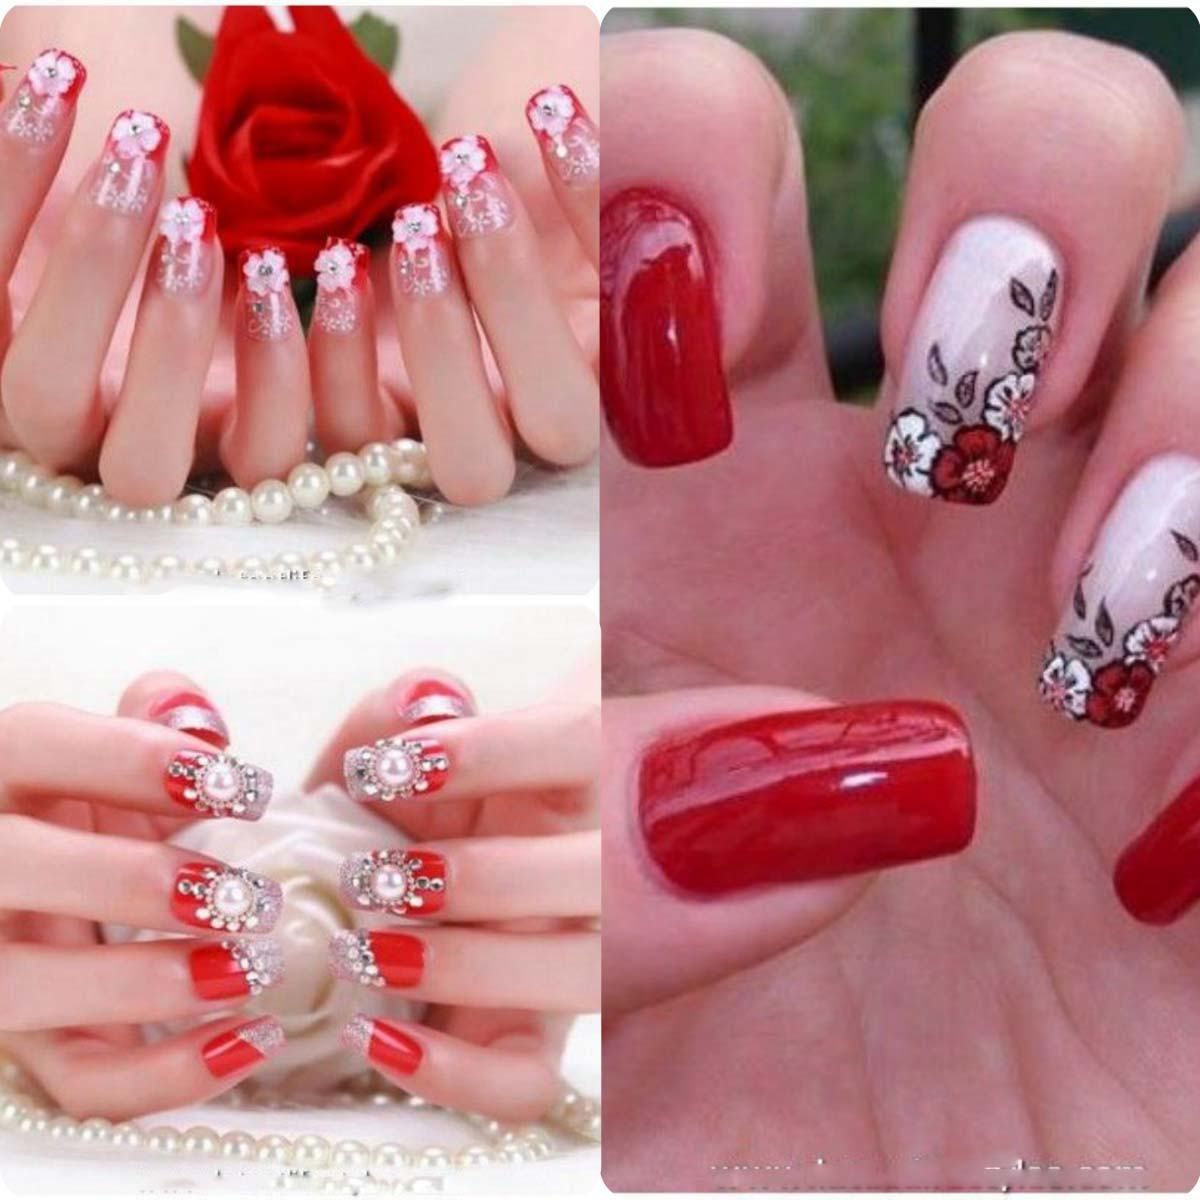 Best Bridal Nail Art Ideas For Wedding Brides 2016-2017